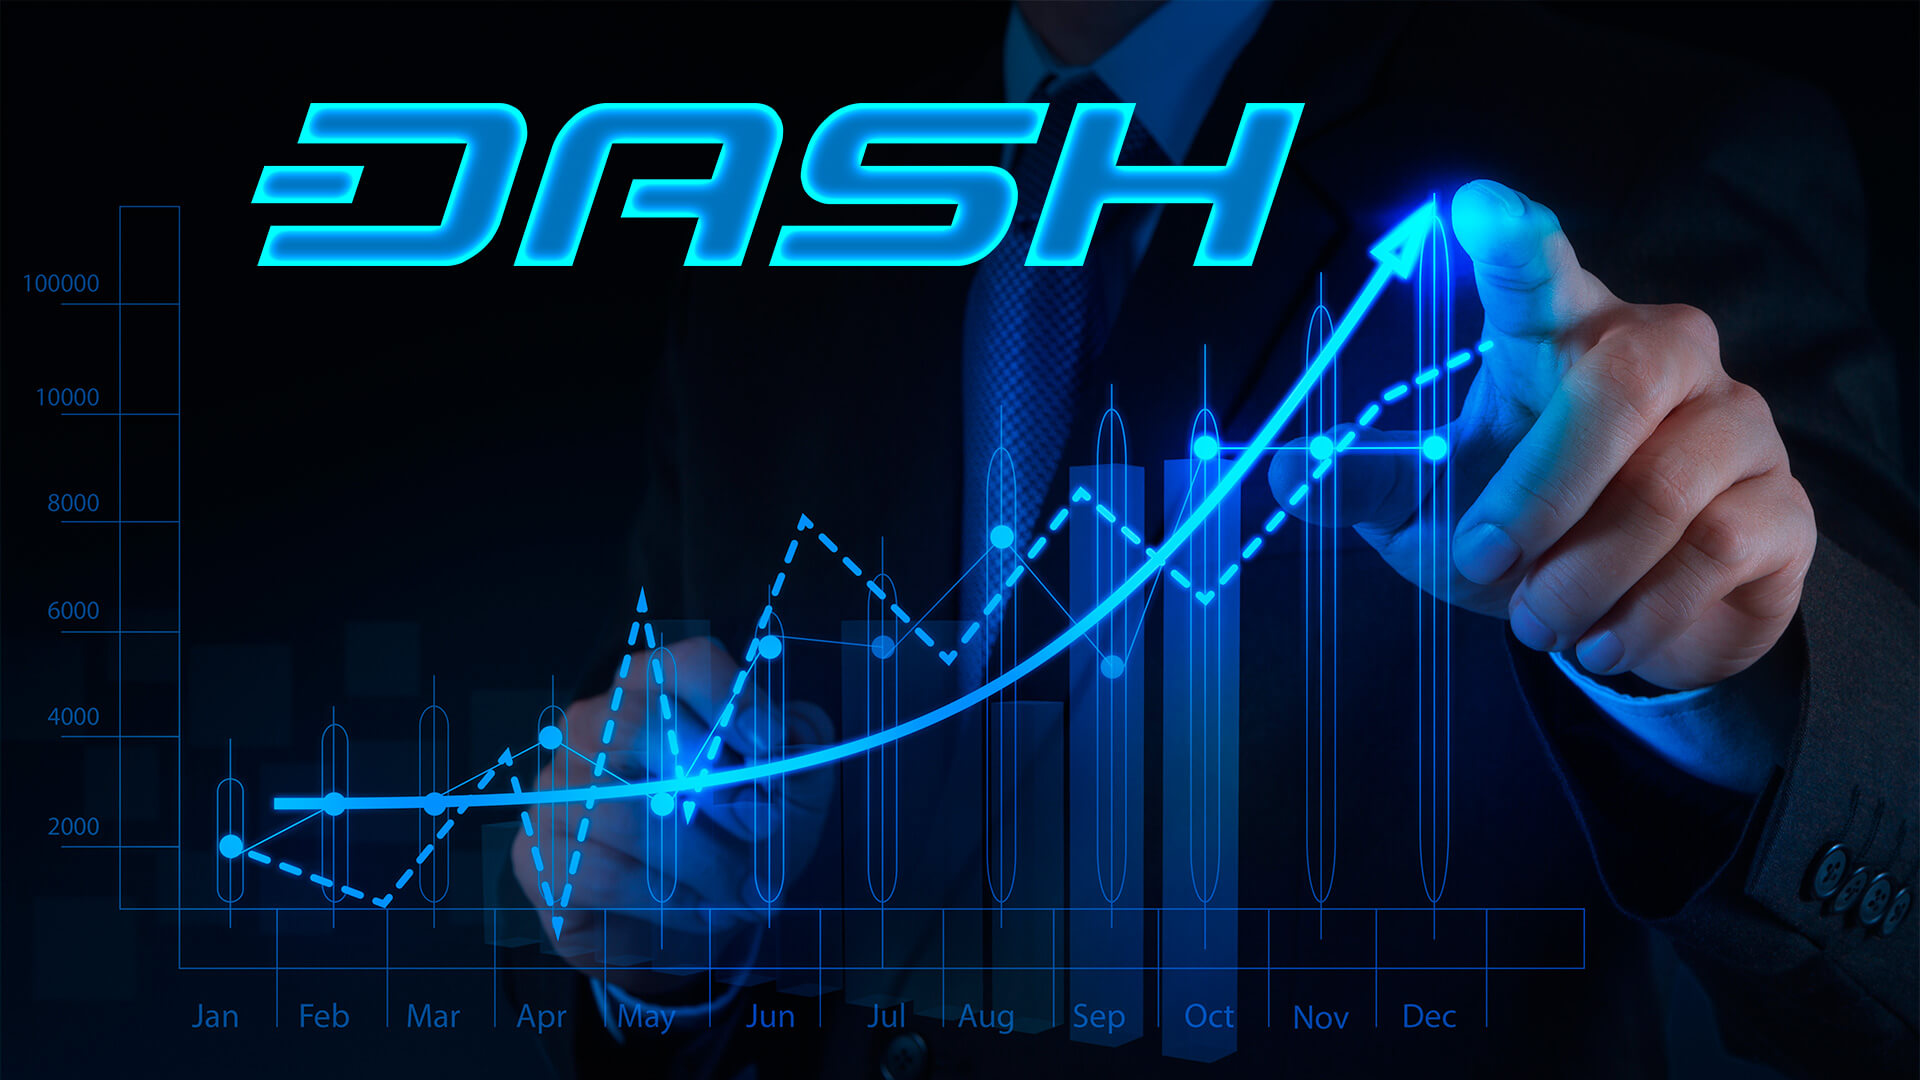 Dash kryptowaluta